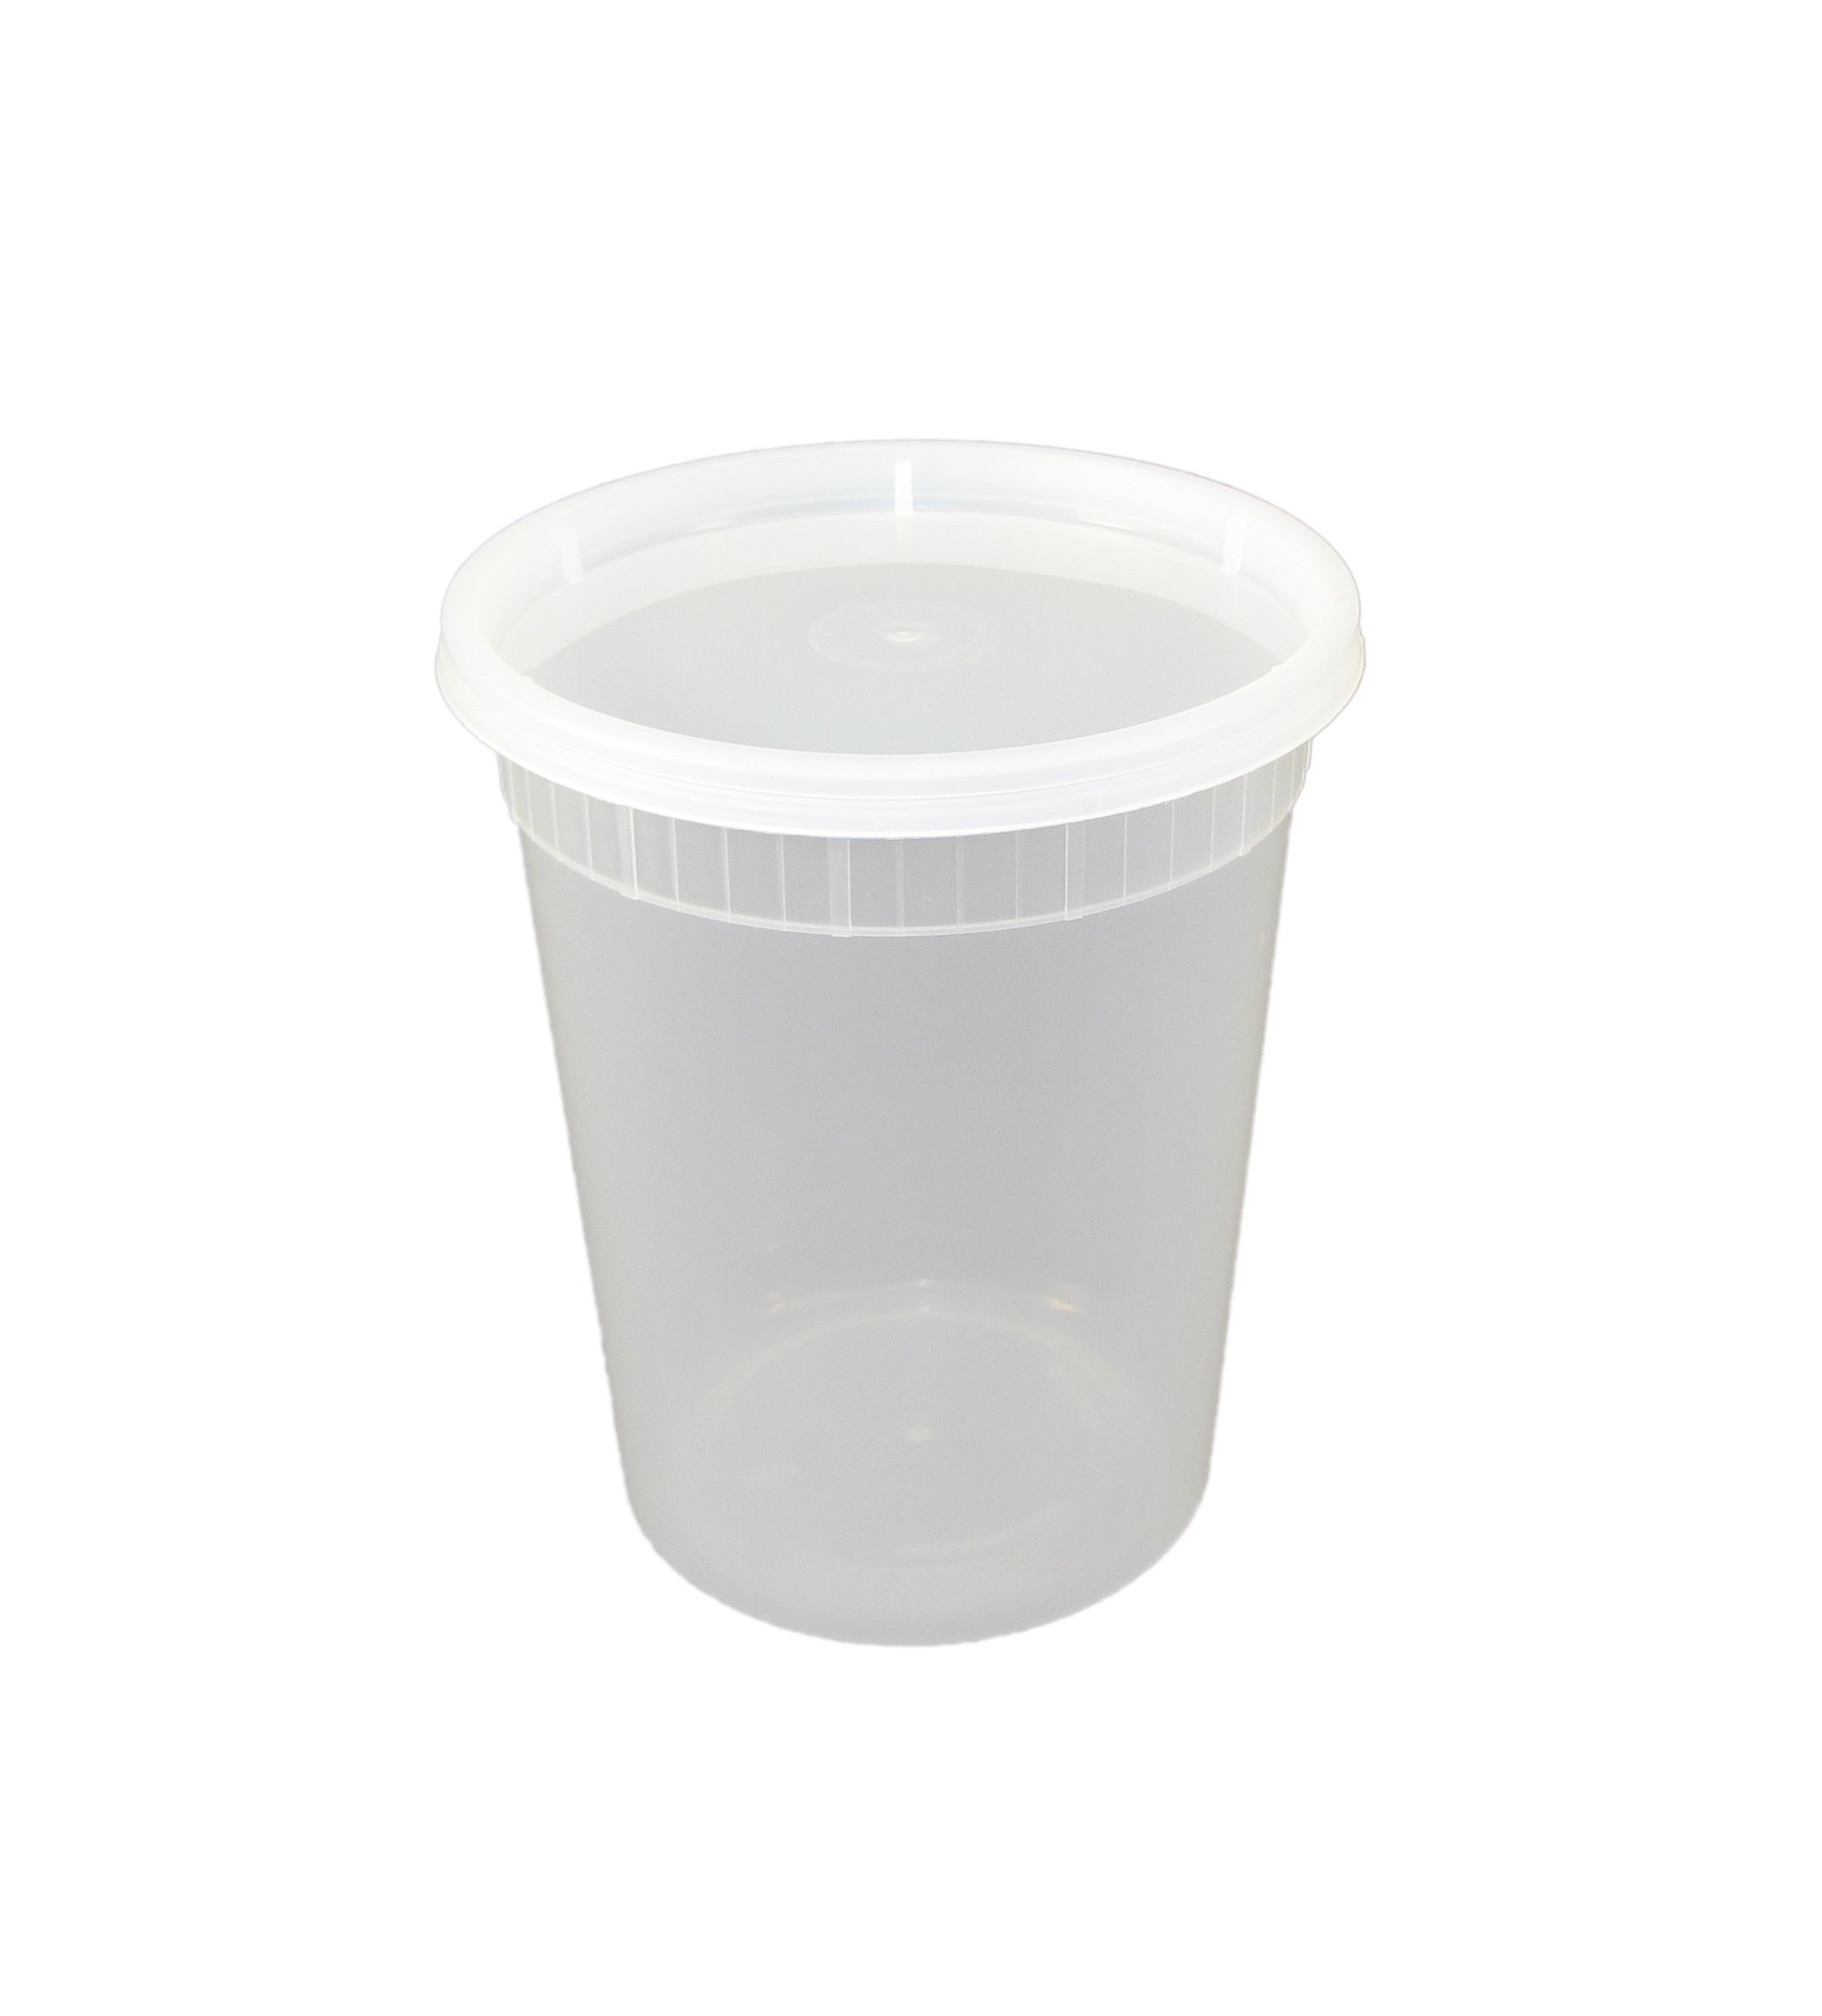 Specialty Quality Packaging TD40032 Plastic Soup Container, 32 oz, Combo 240 (Pack of 240) by Specialty Quality Packaging